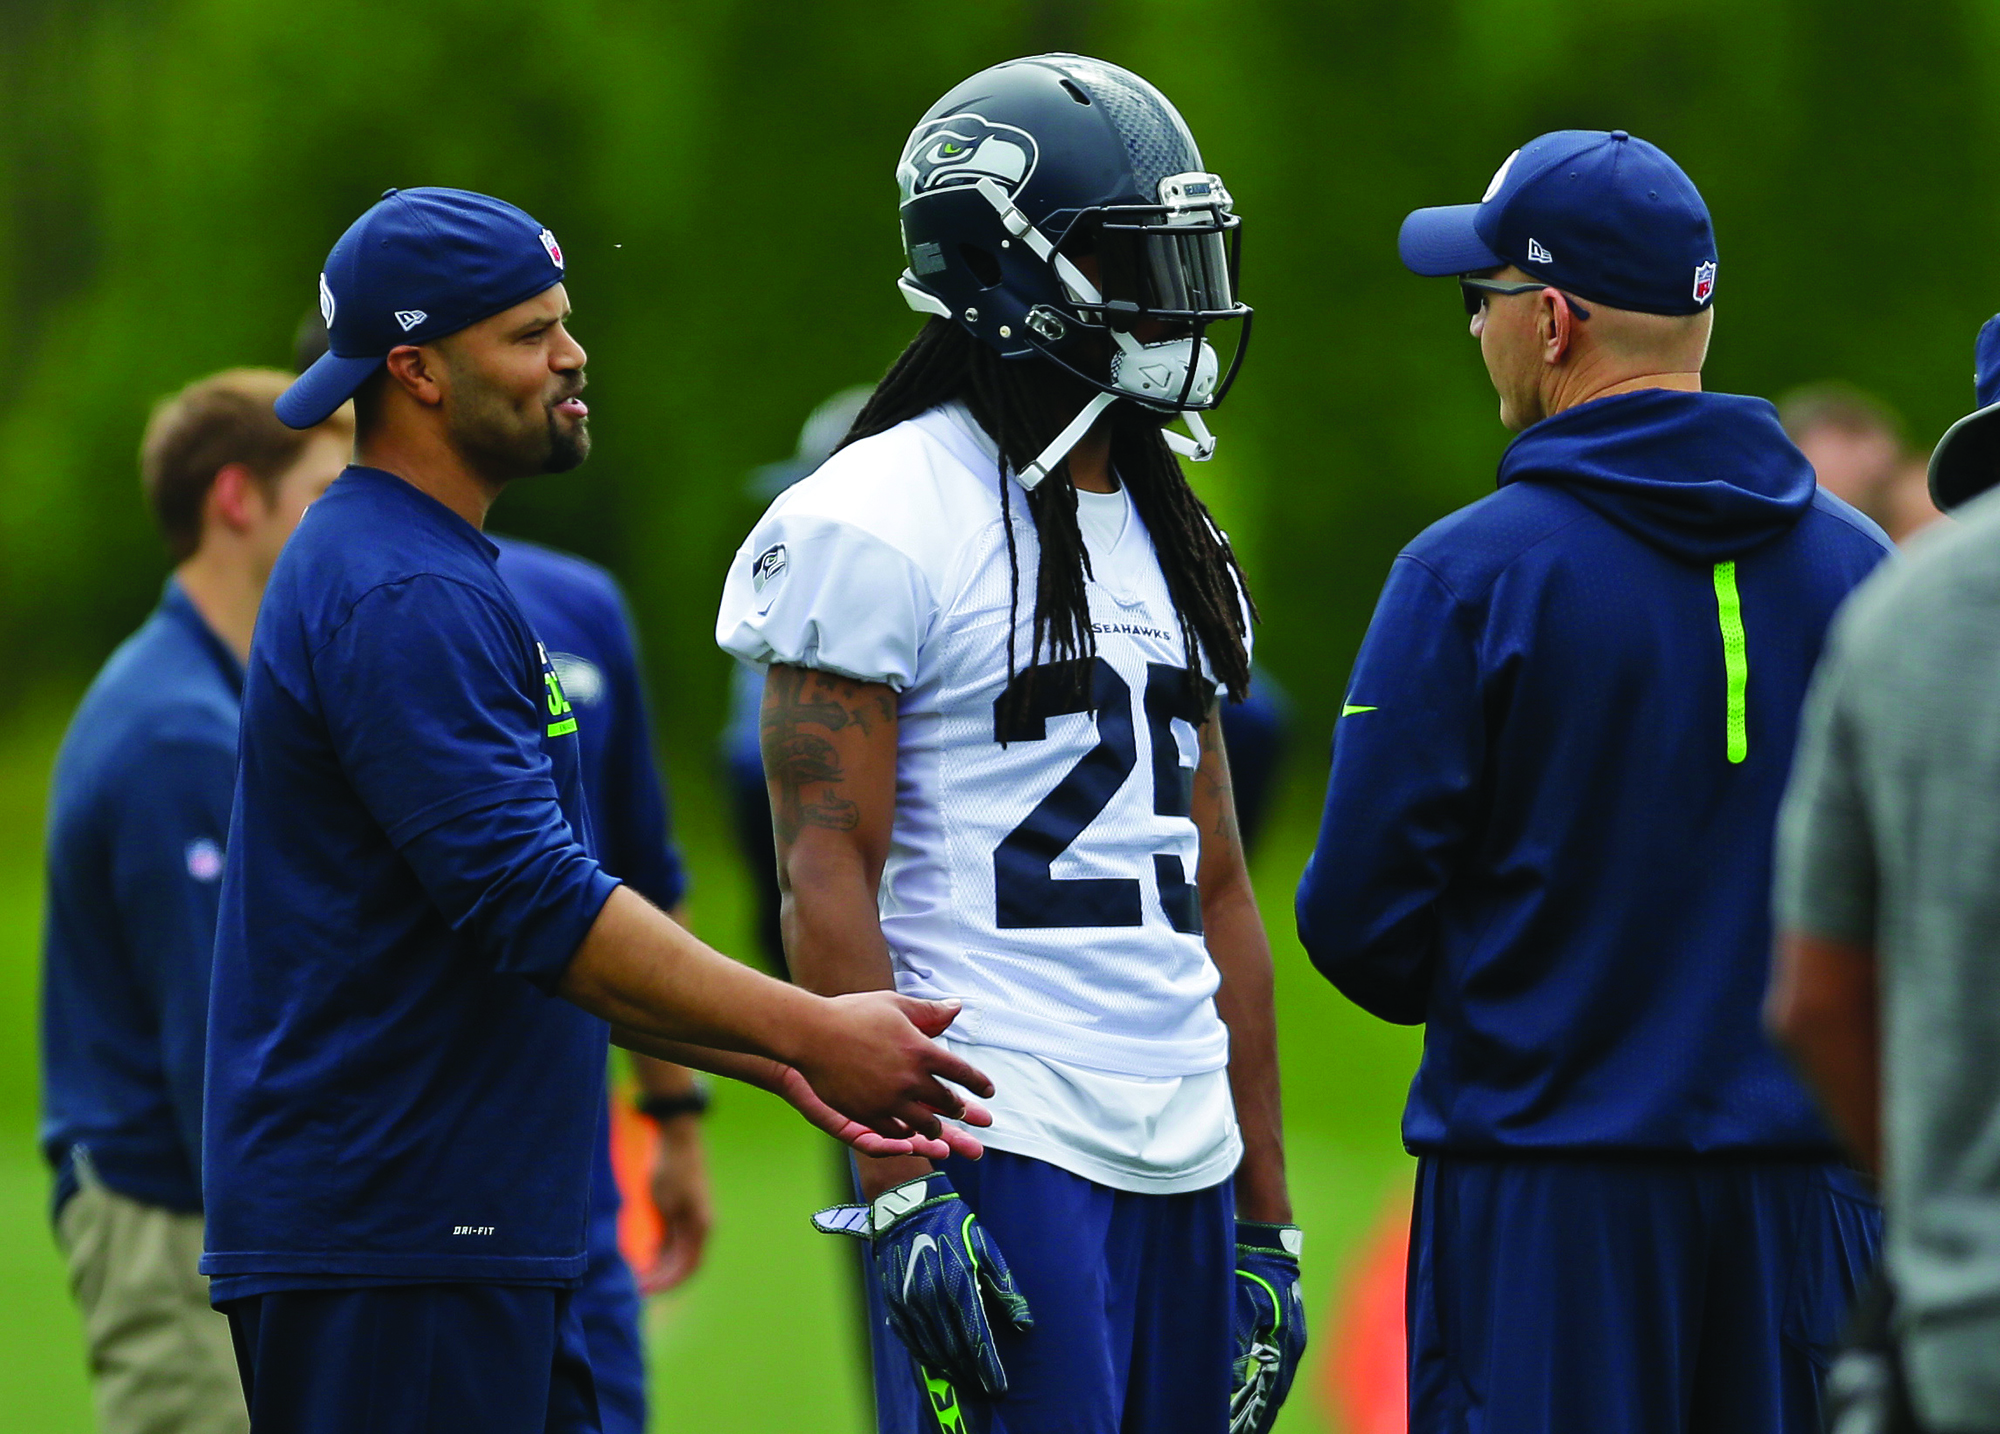 Seattle Seahawks cornerback Richard Sherman (25) talks with offensive coordinator Darrell Bevell, right, and defensive coordinator Kris Richard, left, during NFL football practice on Tuesday in Renton, Wash. AP NEWSWIRE